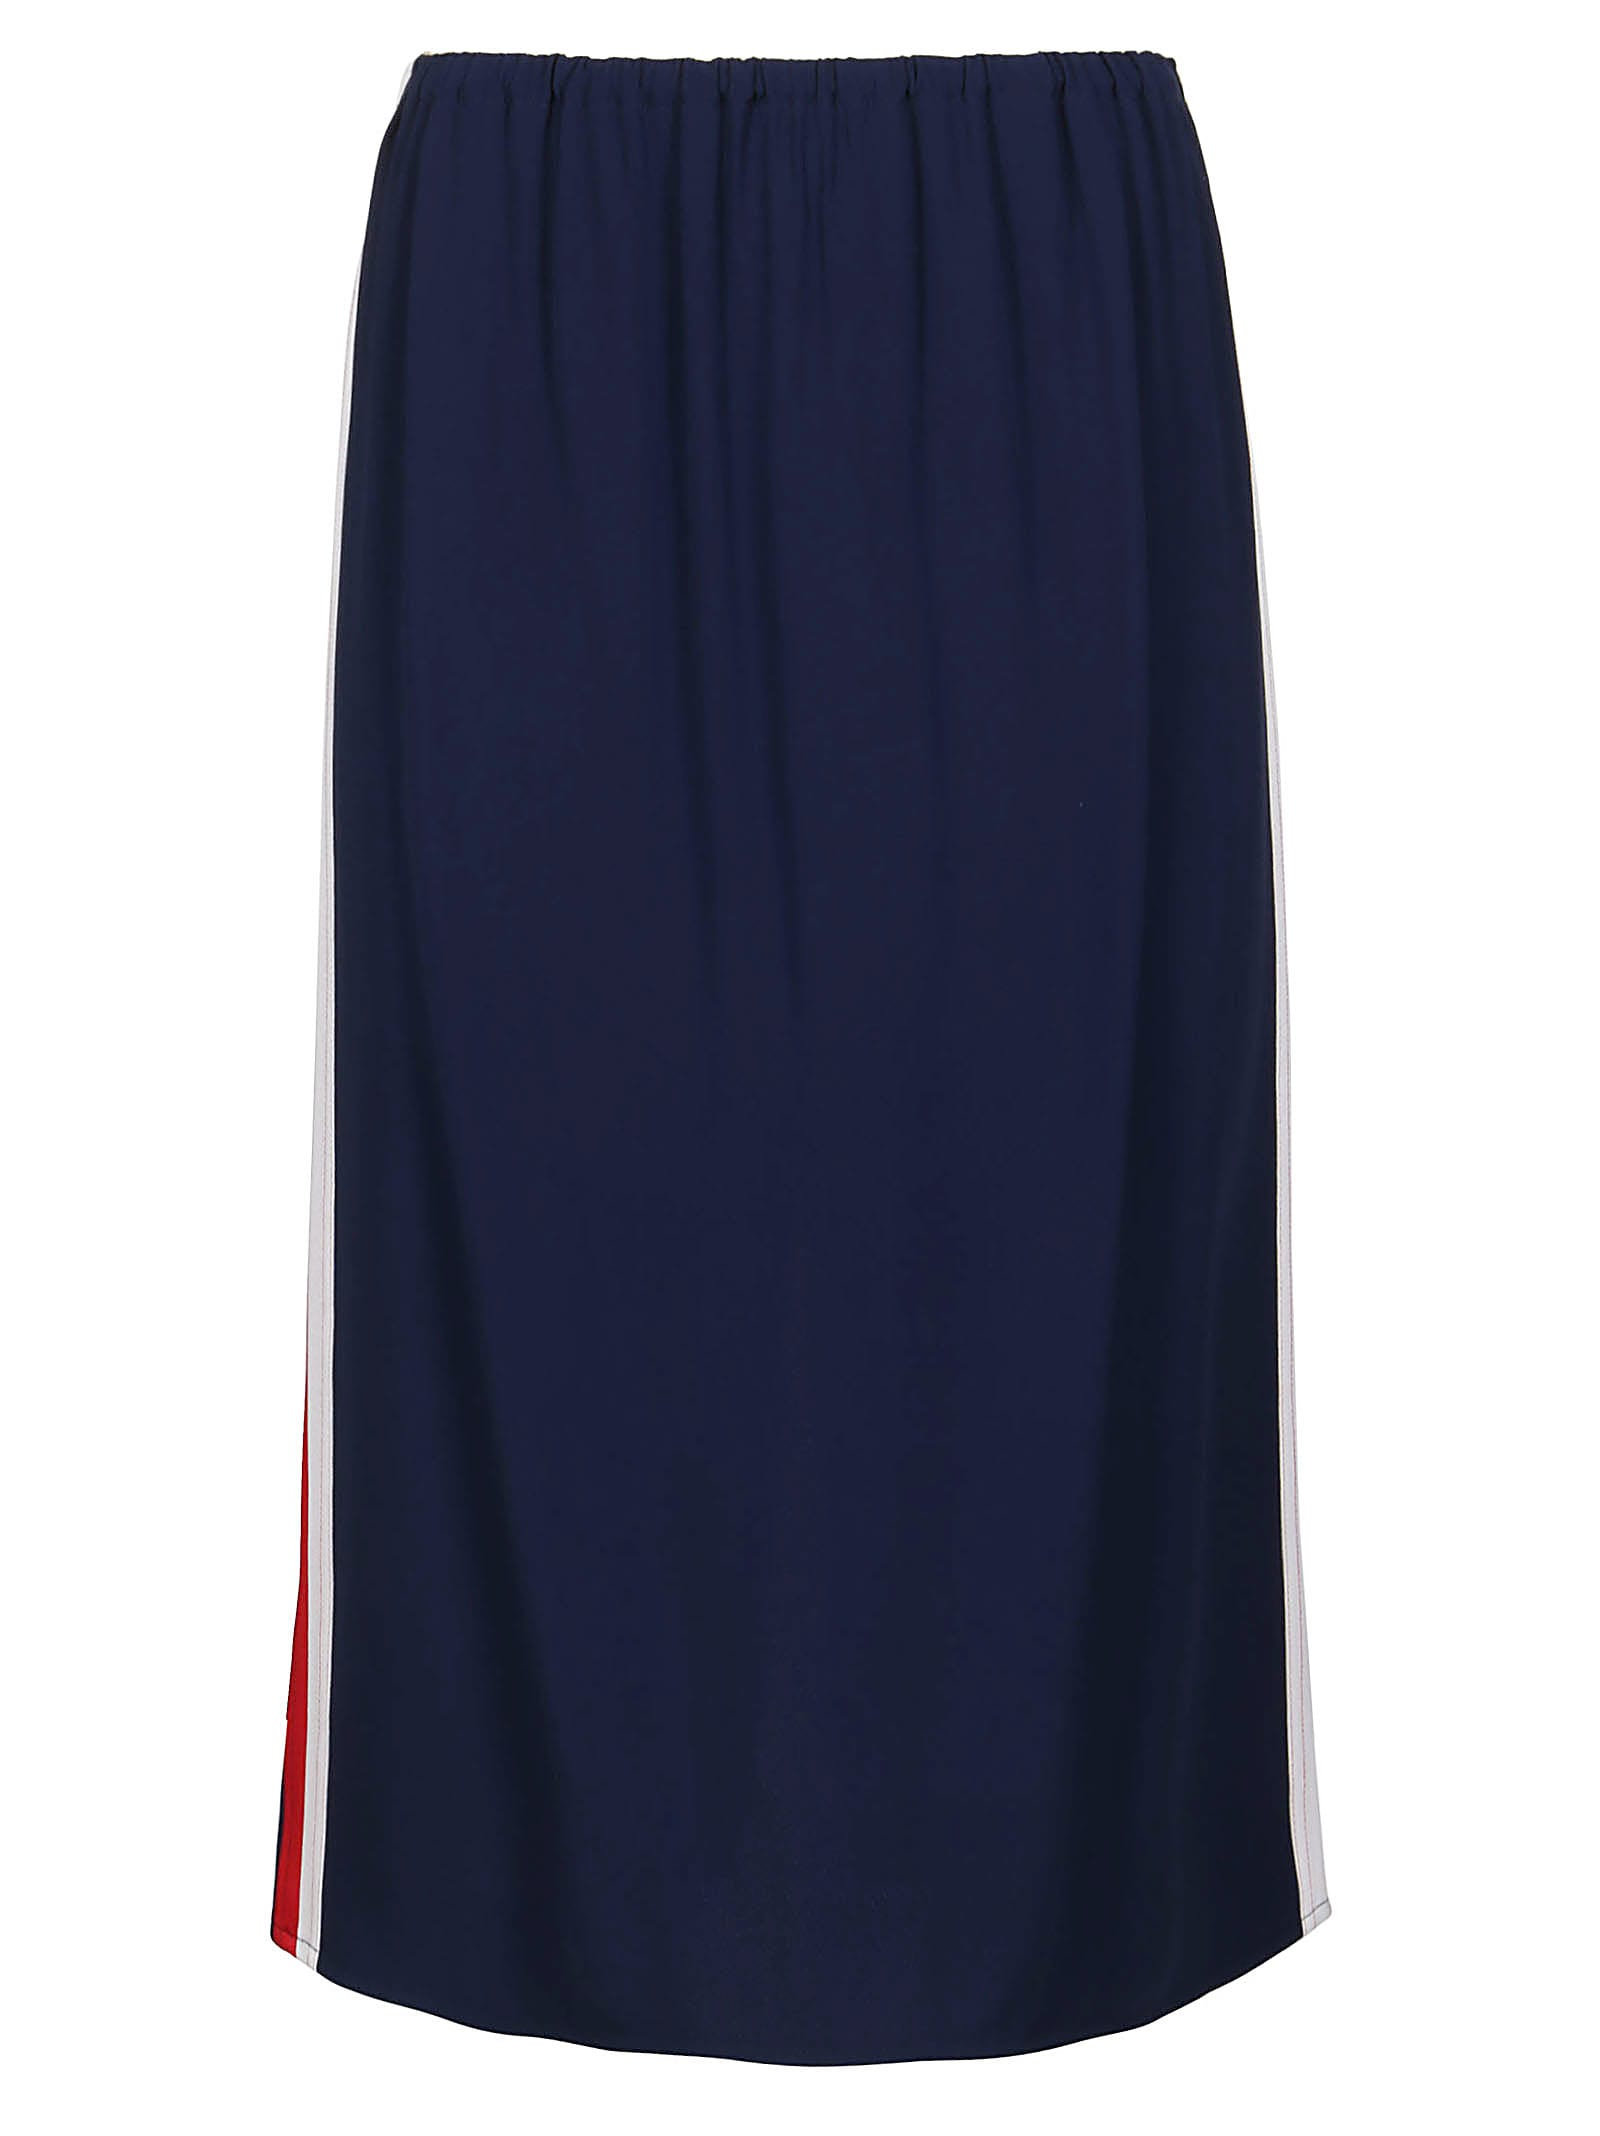 Marni BLUE VISCOSE BLEND SKIRT